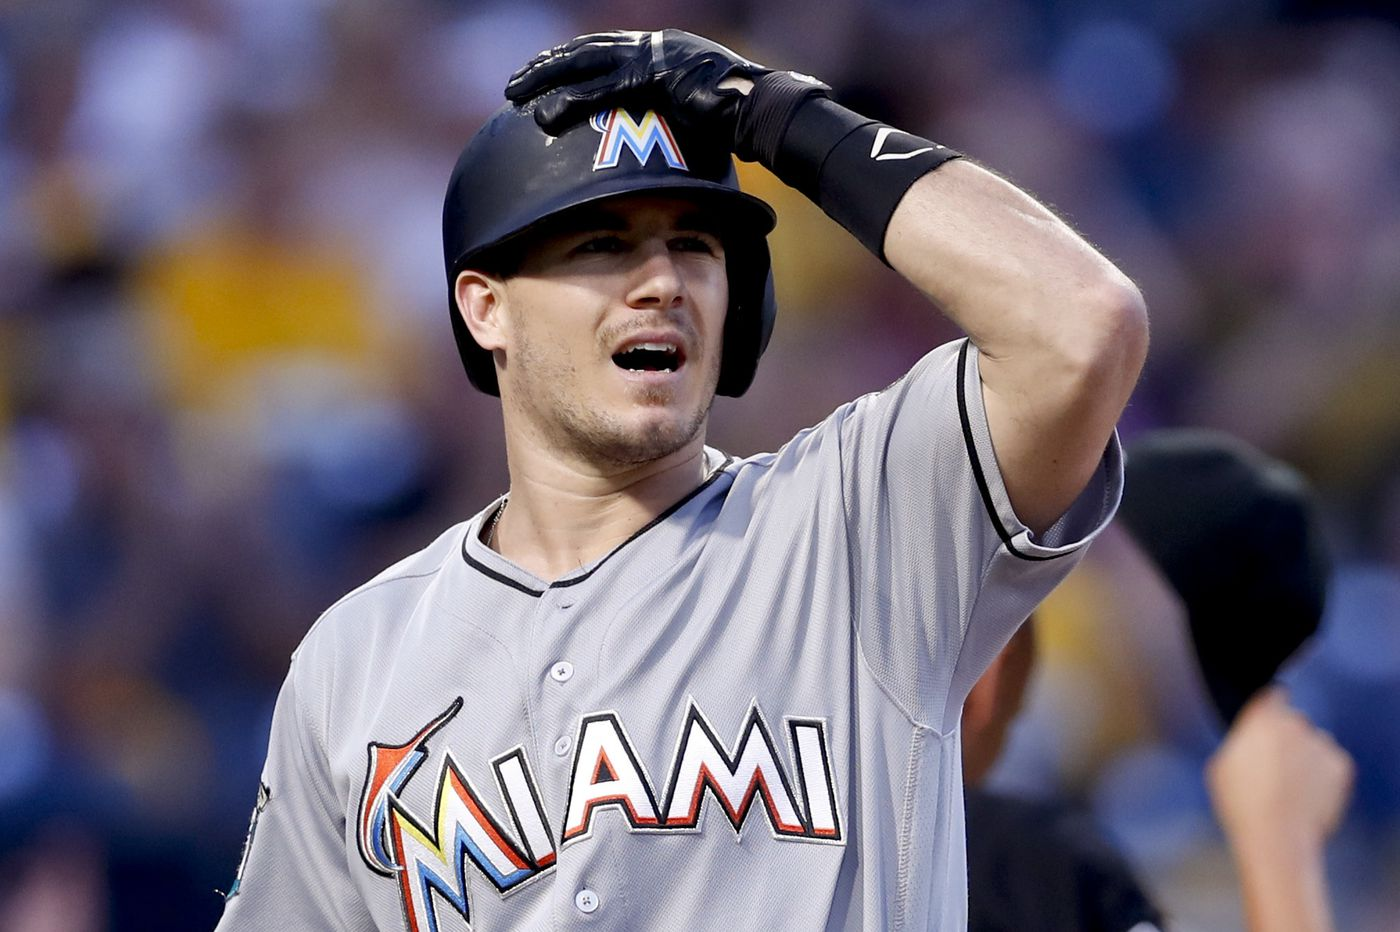 Catcher J.T. Realmuto traded from Marlins to Phillies for three players